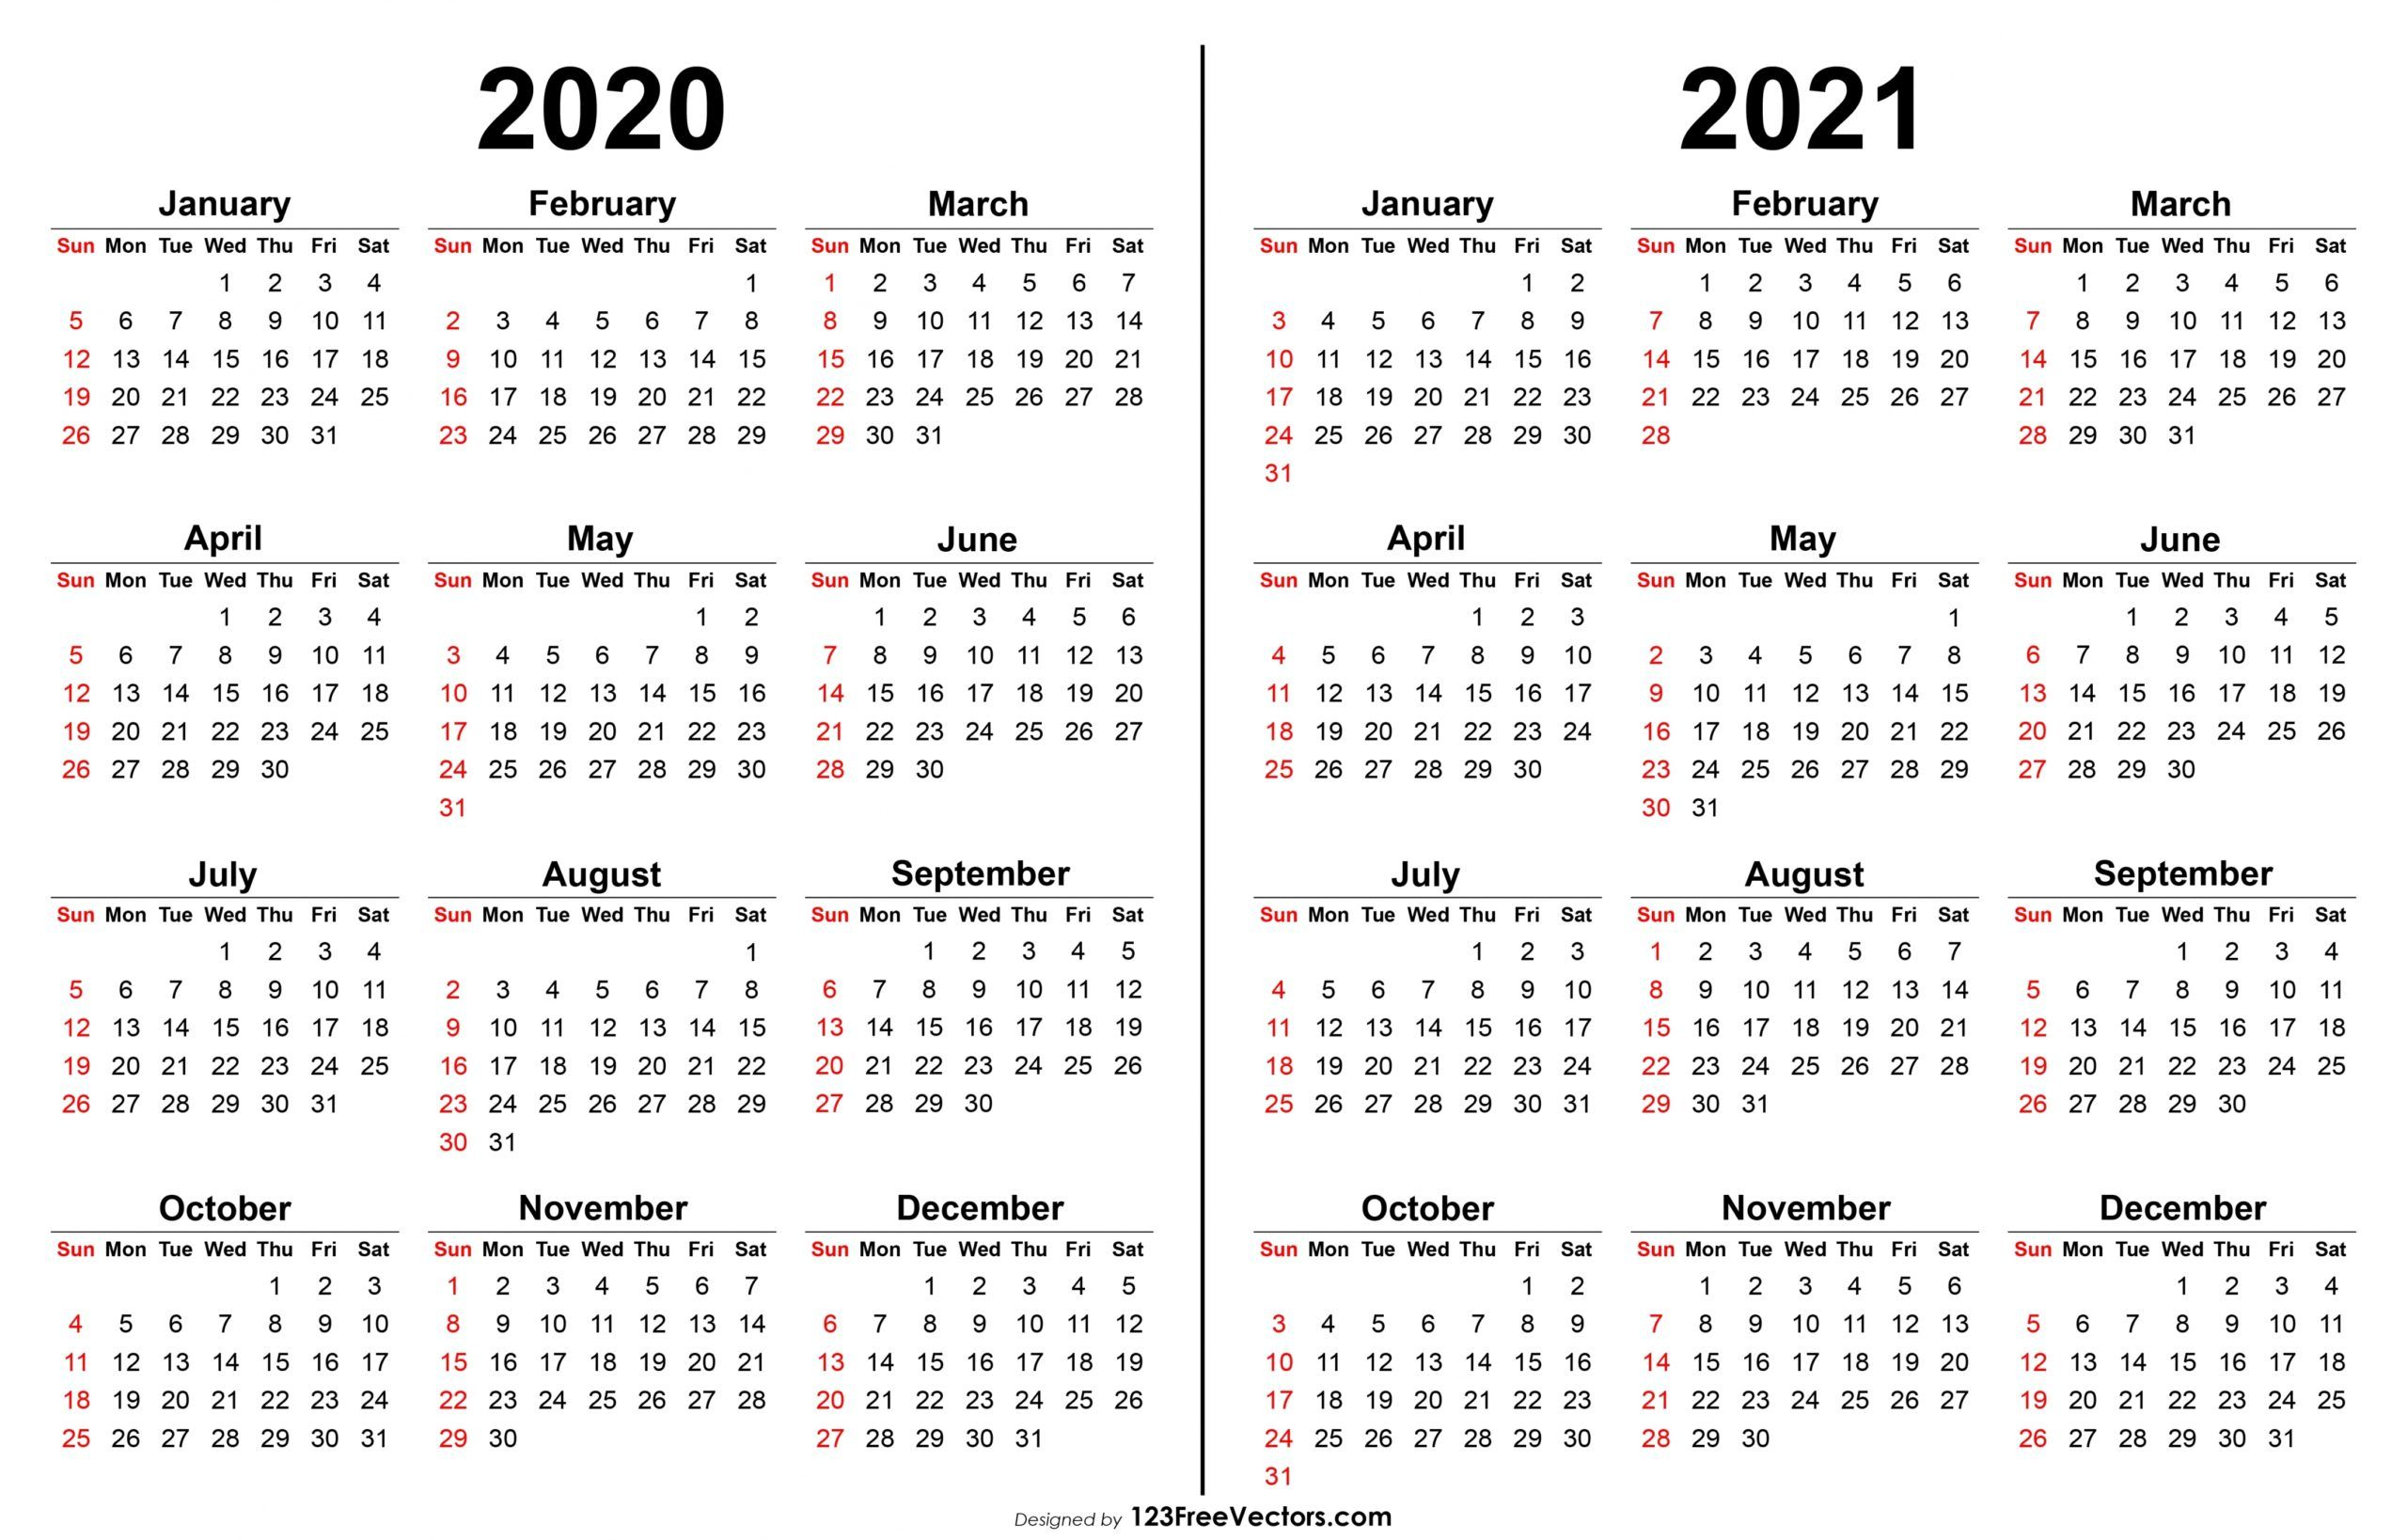 Delightful To The Blog On This Moment I Ll Provide You With With Regards To 2020 2021 Printable C In 2020 Calendar Printables Print Calendar Printable Yearly Calendar